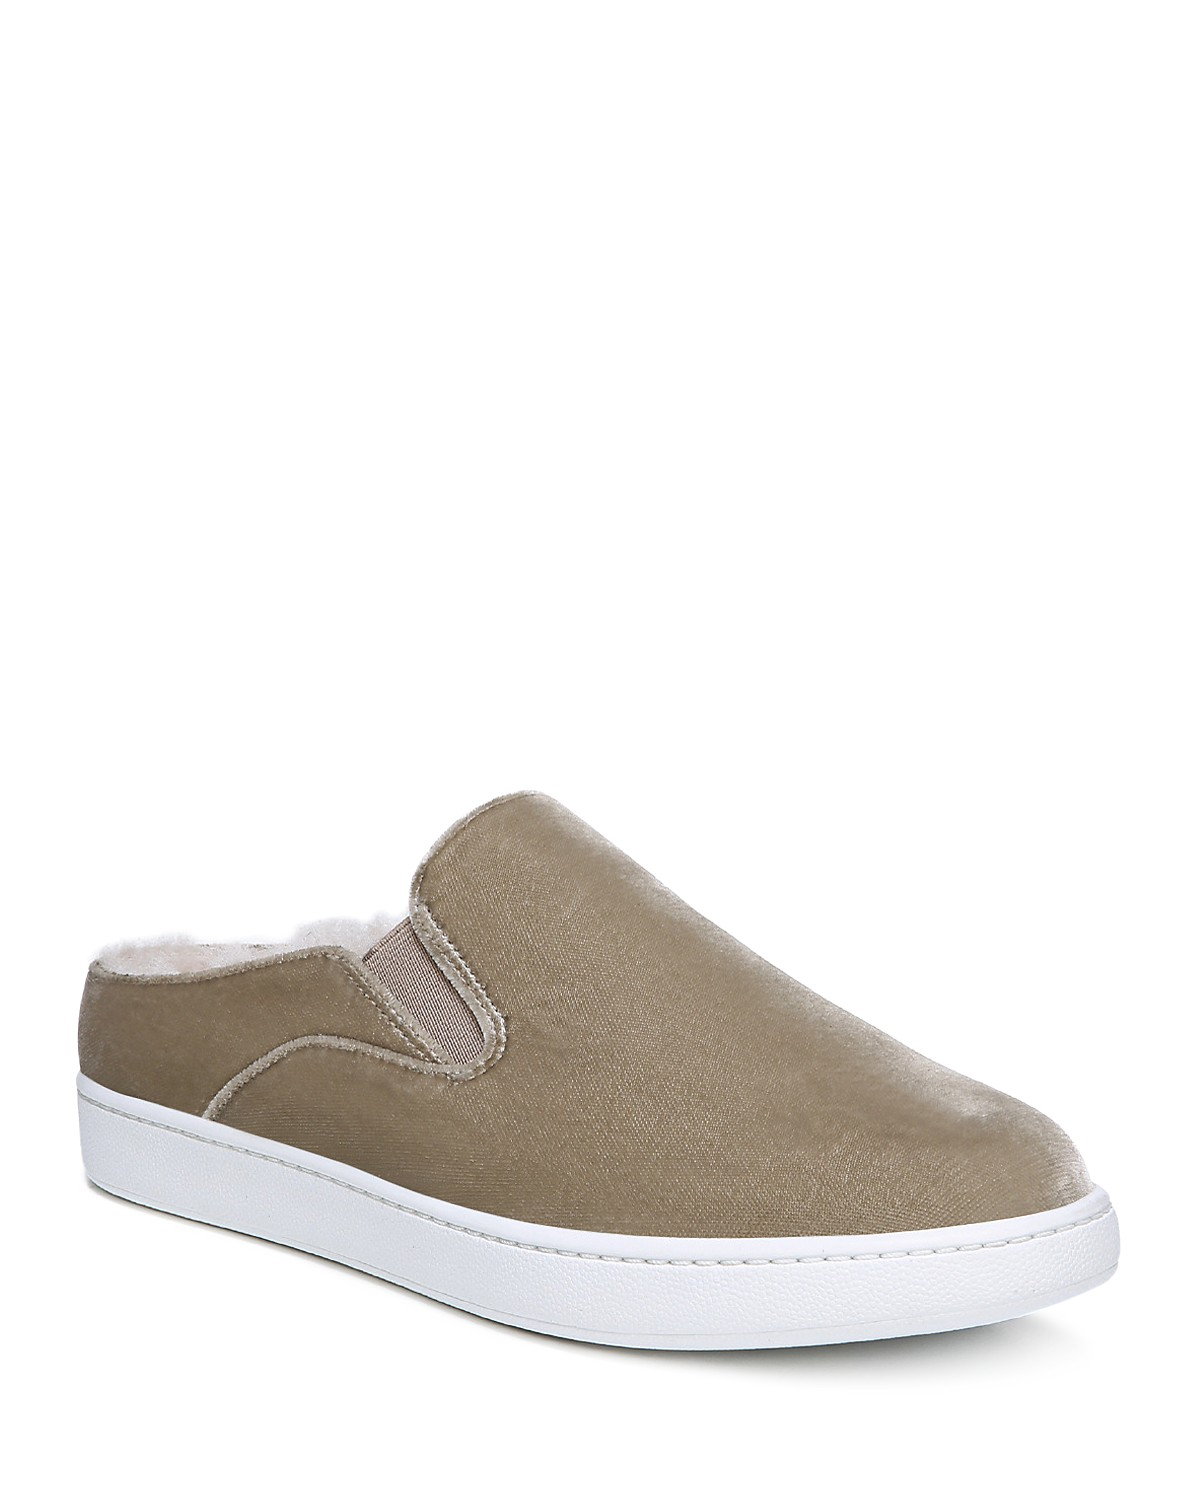 Vince Verrell Velvet and Shearling Sneaker Mule - 100% Exclusive Get To Buy Cheap Online Stockist Online Cheap Best Prices Cheap Sale Low Shipping Fee New Cheap Price y8Ua6uO